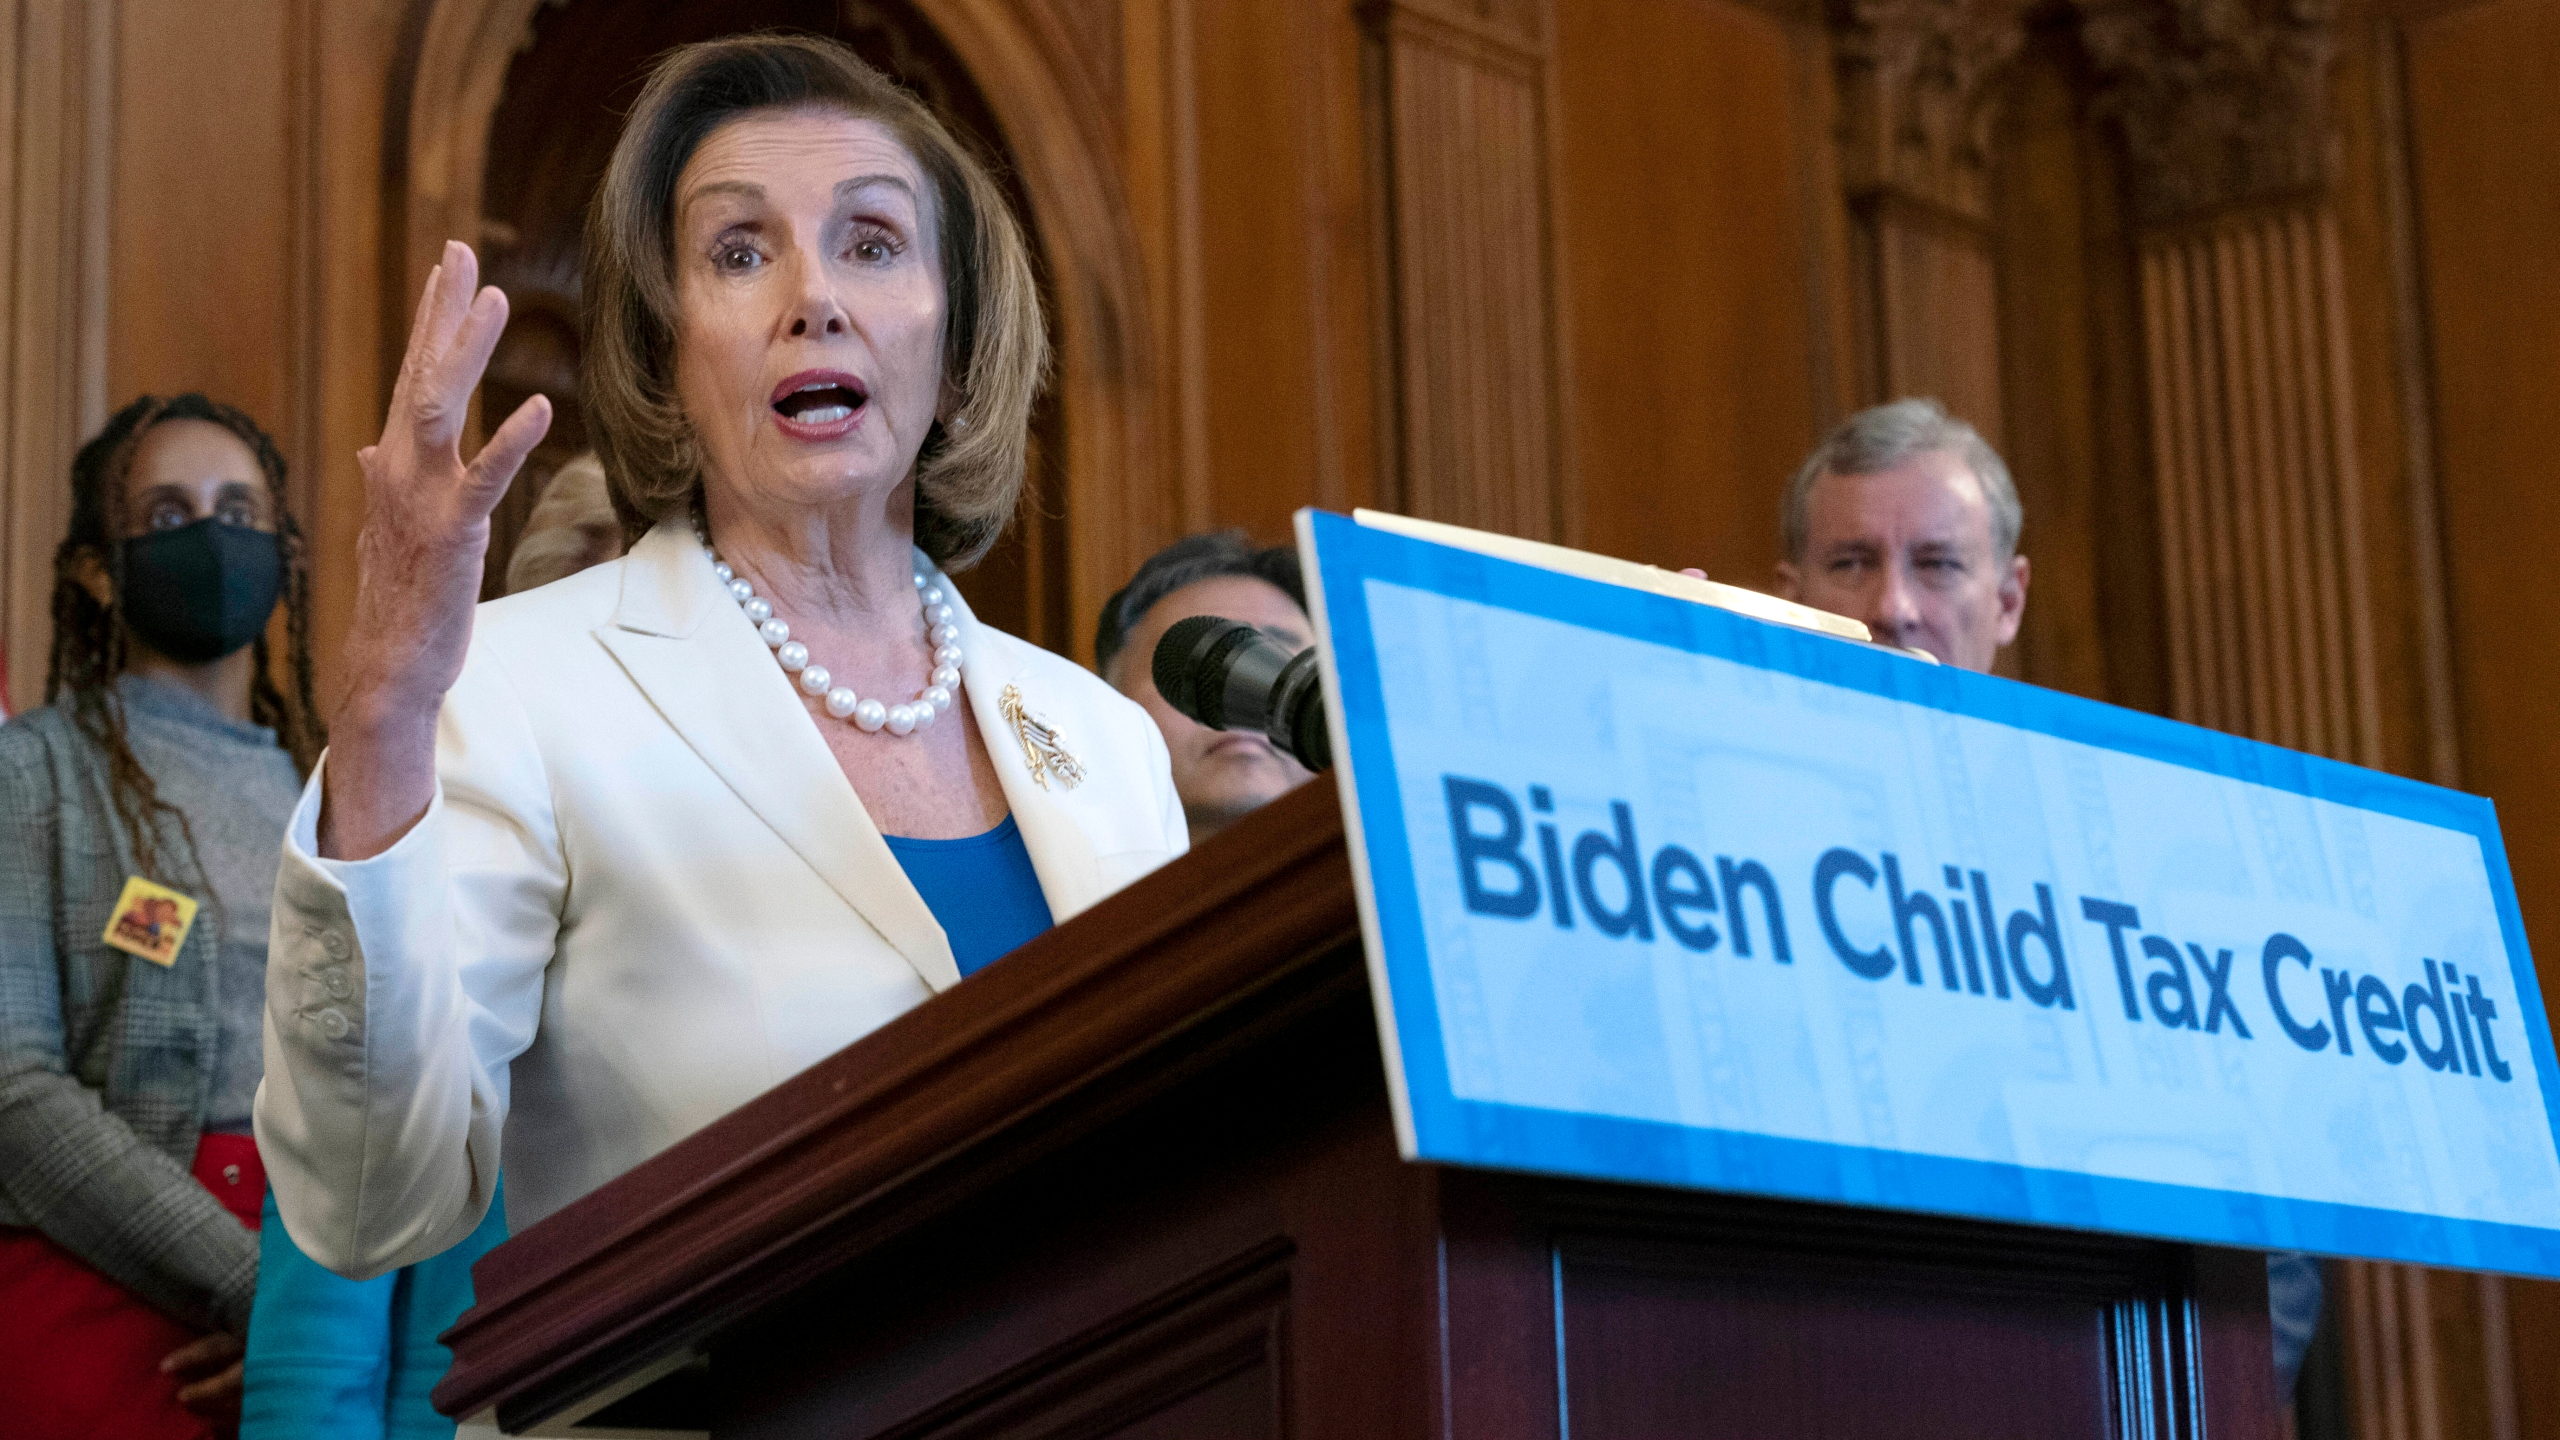 Speaker of the House Nancy Pelosi, D-Calif., speaks during Biden Child Tax Credit news conference, on Capitol Hill in Washington, Tuesday, July 20, 2021. (AP Photo/Jose Luis Magana)